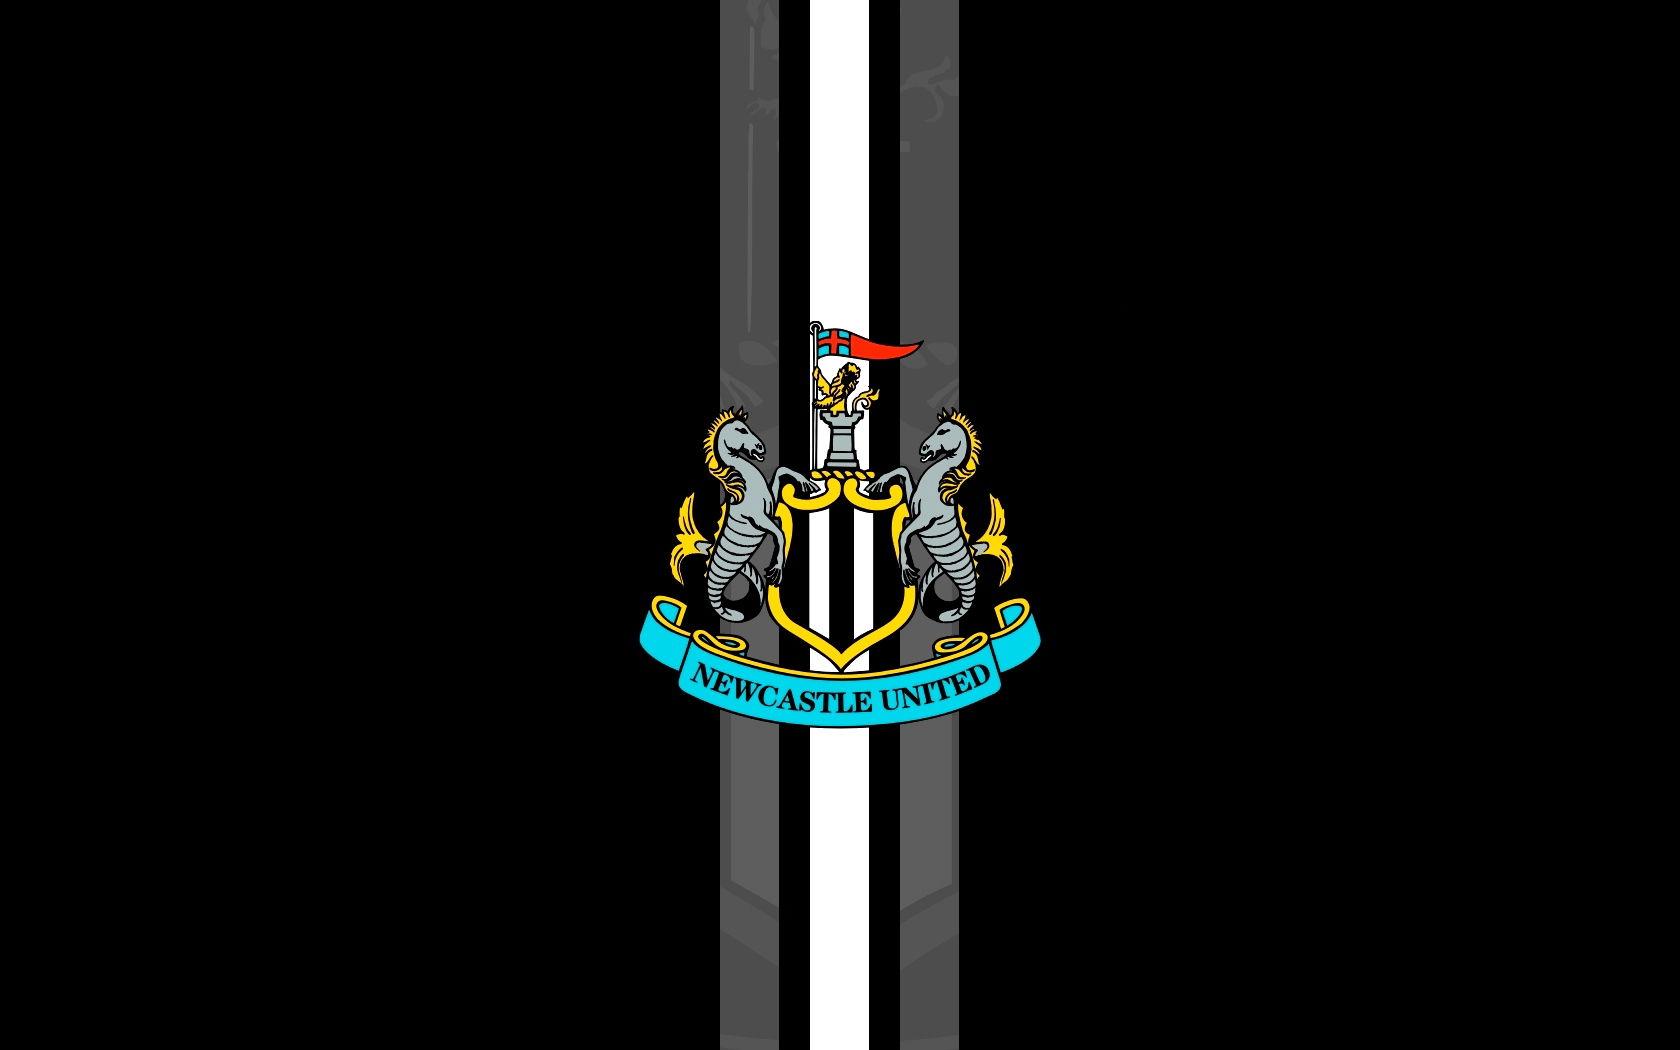 High Resolution Wallpaper Fall Download Newcastle United Live Wallpaper Gallery